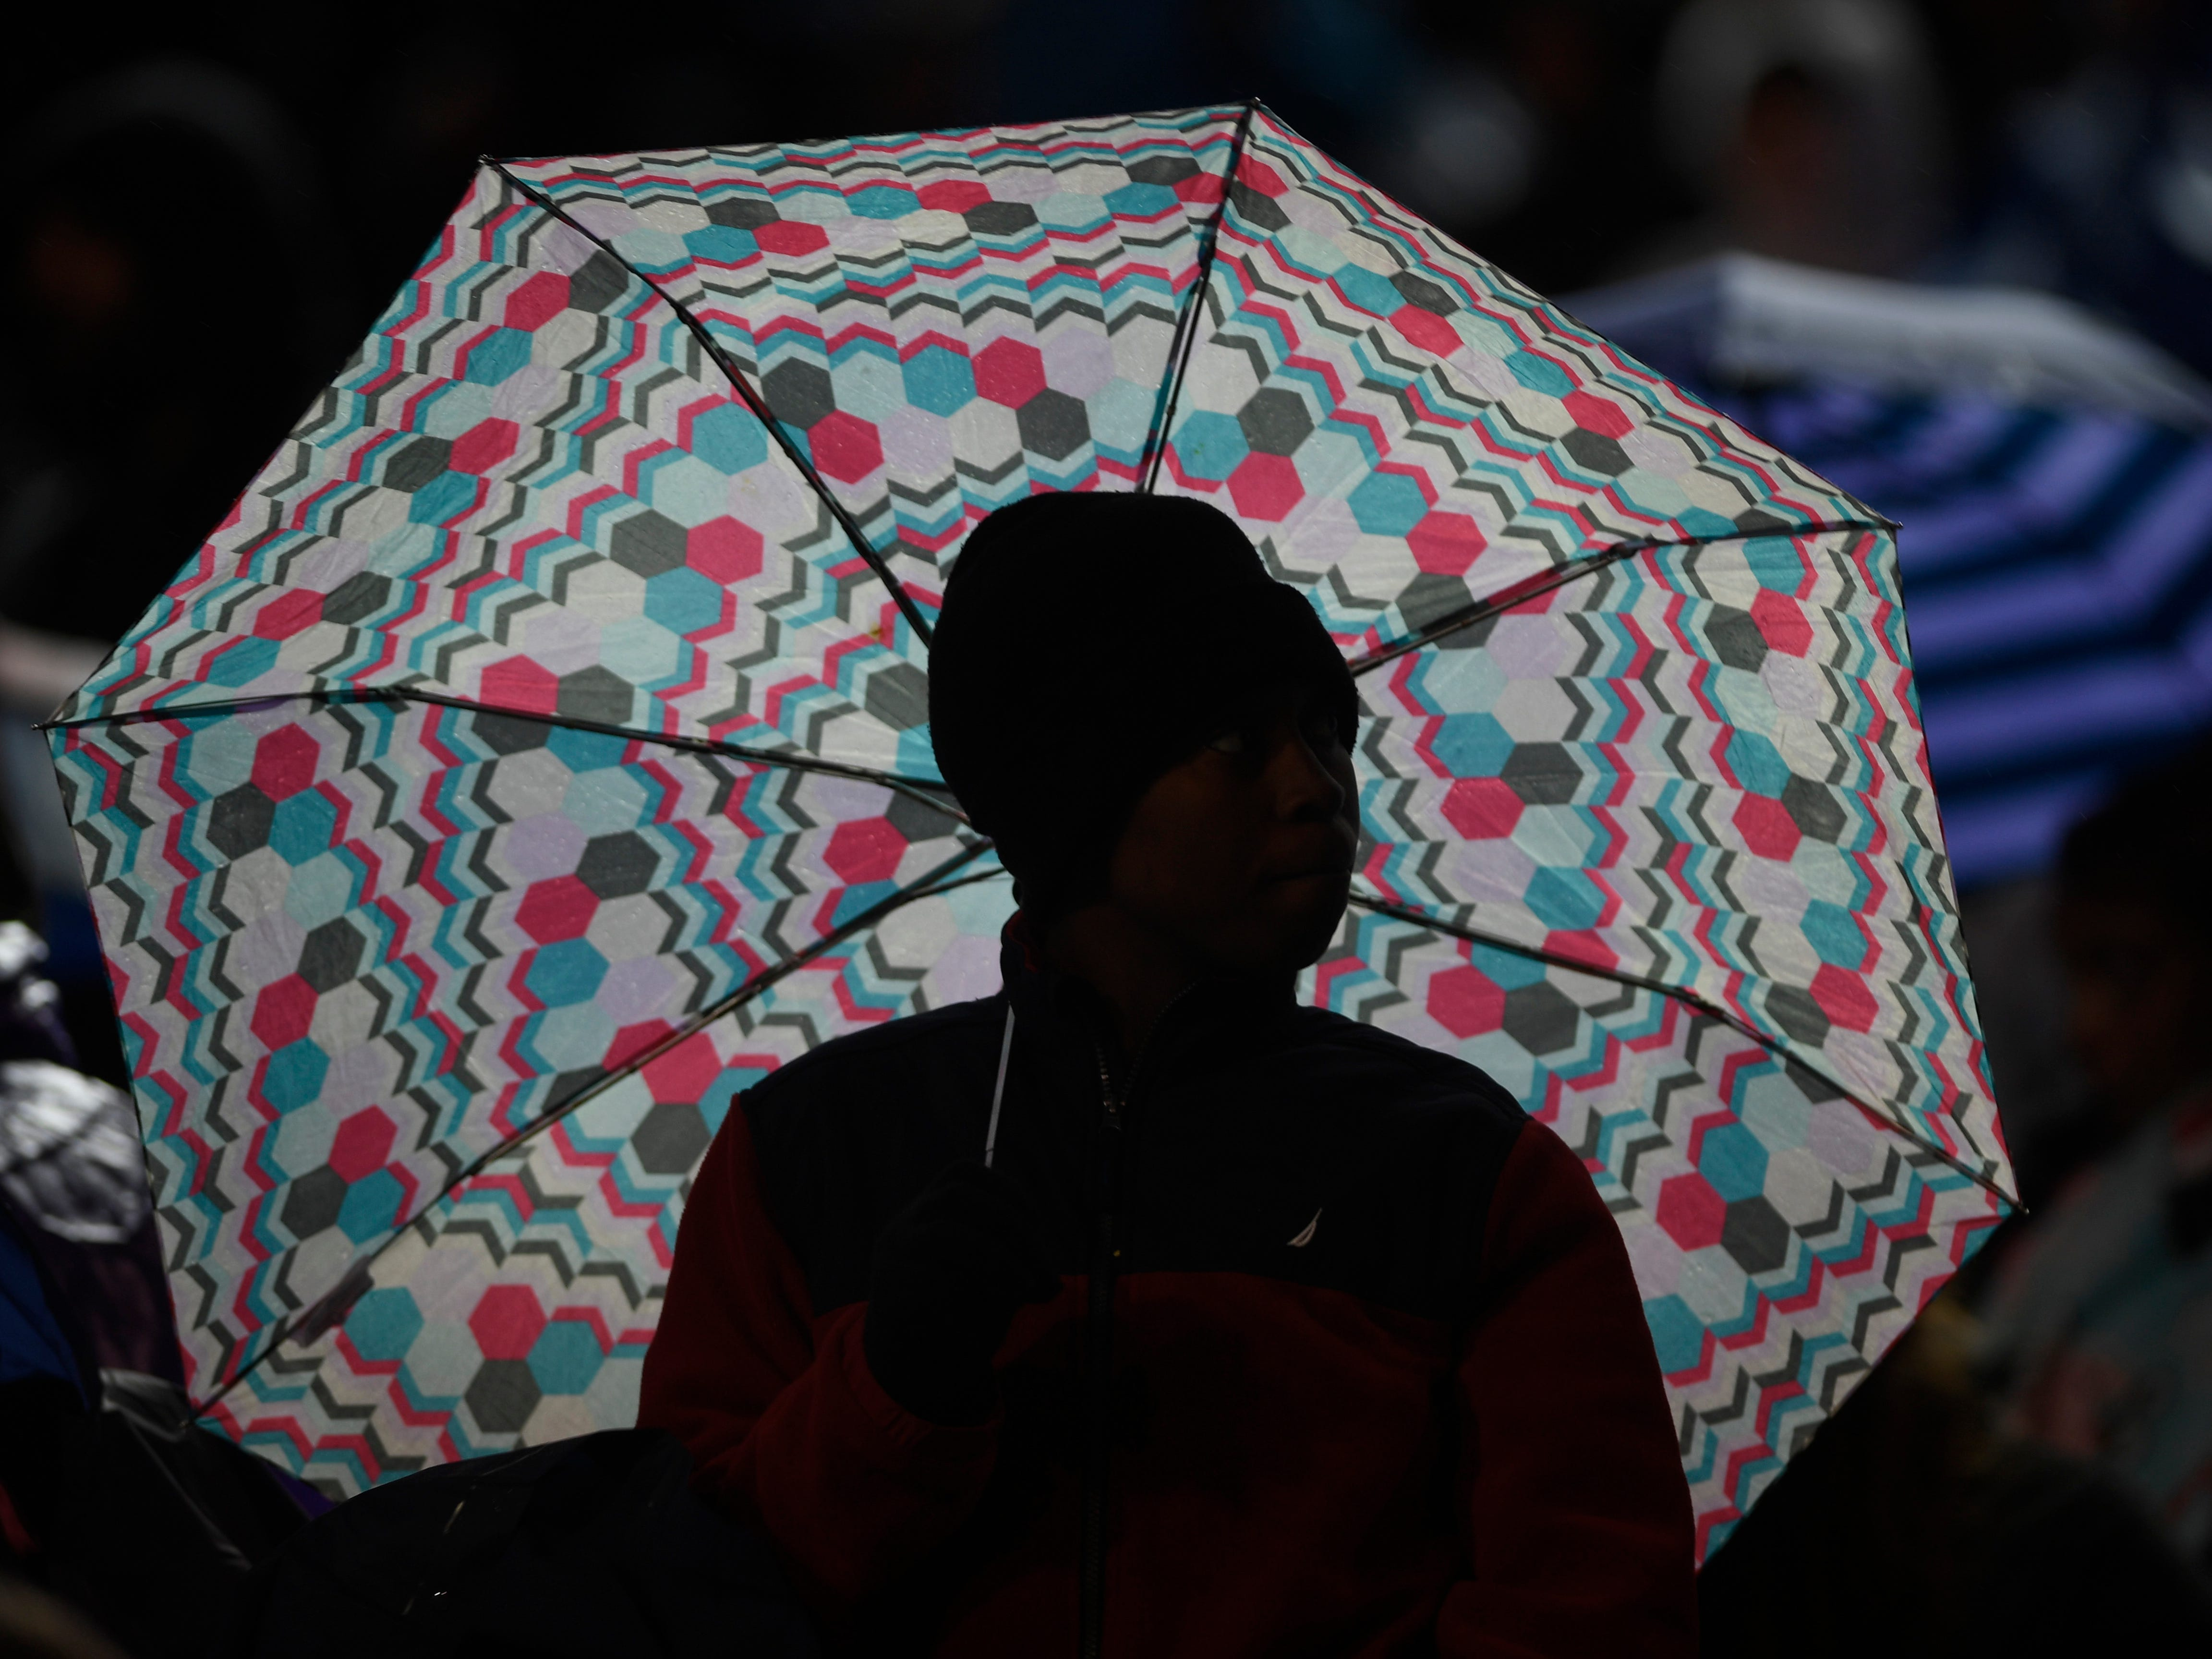 A fan is silhoetted under an umbrealla during the Class 4A BlueCross Bowl state championship at Tennessee Tech's Tucker Stadium in Cookeville, Tenn., on Thursday, Nov. 29, 2018.